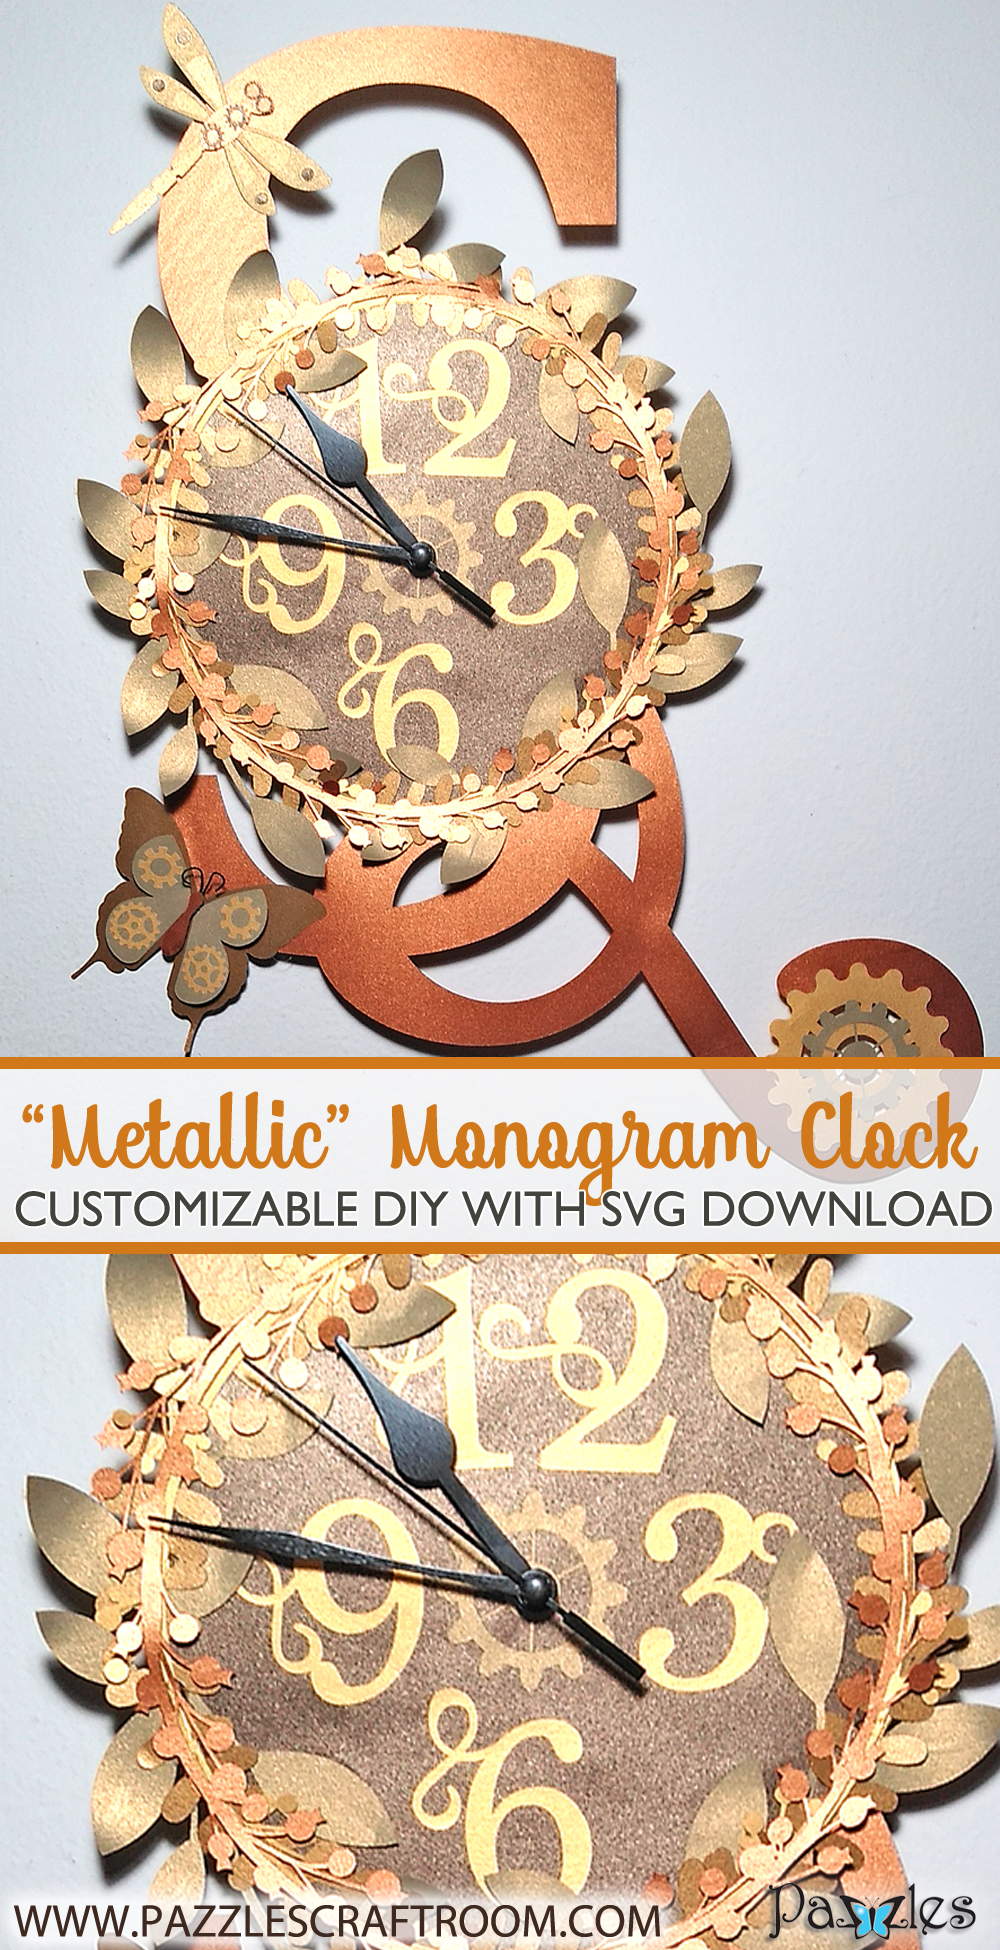 Pazzles Steampunk Metallic DIY Monogram Clock with SVG download by Renee Smart. Compatible with all major electronic cutters including Pazzles Inspiration, Cricut, and Silhouette Cameo.